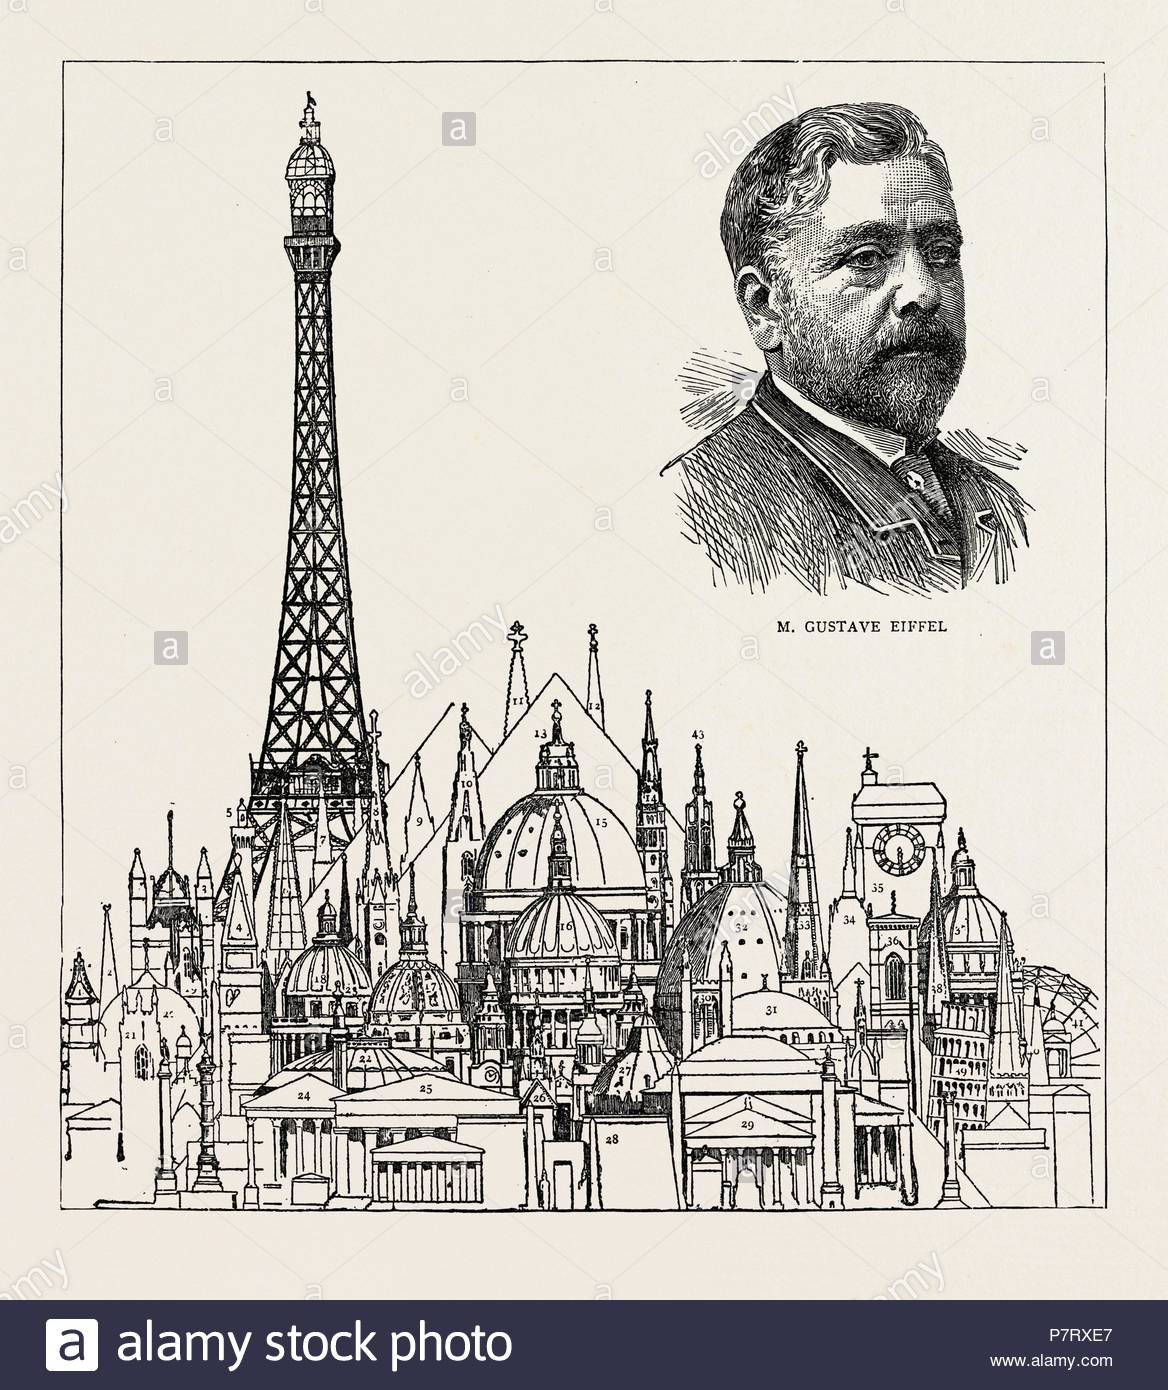 THE EIFFEL TOWER AT THE PARIS EXHIBITION AS COMPARED WITH SOME OF THE HIGHEST BUILDINGS IN THE WORLD: 1. Porcelain Tower, Nankin, China, 200 feet. 2. Chichester Cathedral, 270 feet. 3. Victoria Tower, Westminster, 331 feet. 4. Bell Tower, St. Mark's, Venice, 323 feet. 5. Torre Asinelli, Bologna, 370 feet. 6. Friburg Cathedral, 385 feet. 7. Chartres Cathedral, 403 feet. 8. St. Stephen's Cathedral, Vienna, 441 feet. 9. Torazzo of Cremona, 396 feet. 10. Strasburg Cathedral, 468 feet. 11. Cologne Cathedral, 510 feet. 12. Old St. Paul's, London, 508 feet. 13. Great Pyramid, 460 feet. 14. Church of  - Stock Image